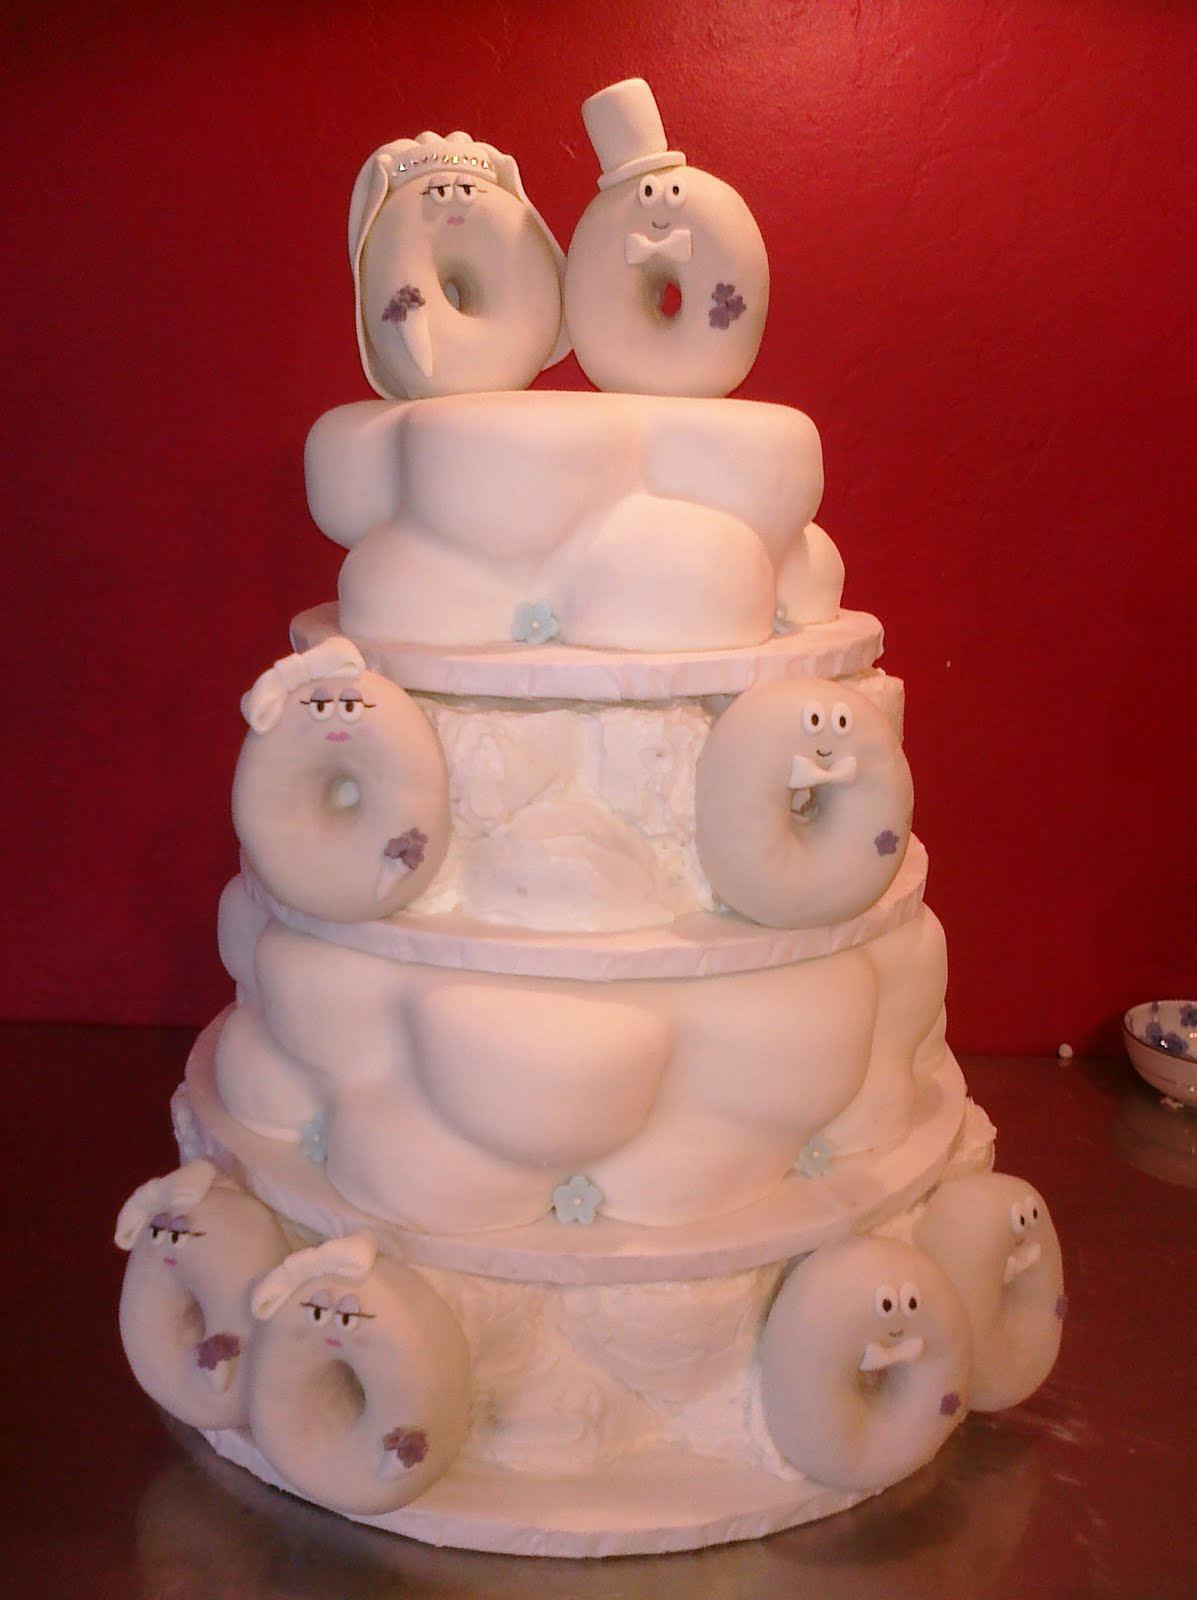 Pams custom cakes donut wedding cake donut wedding cake junglespirit Gallery